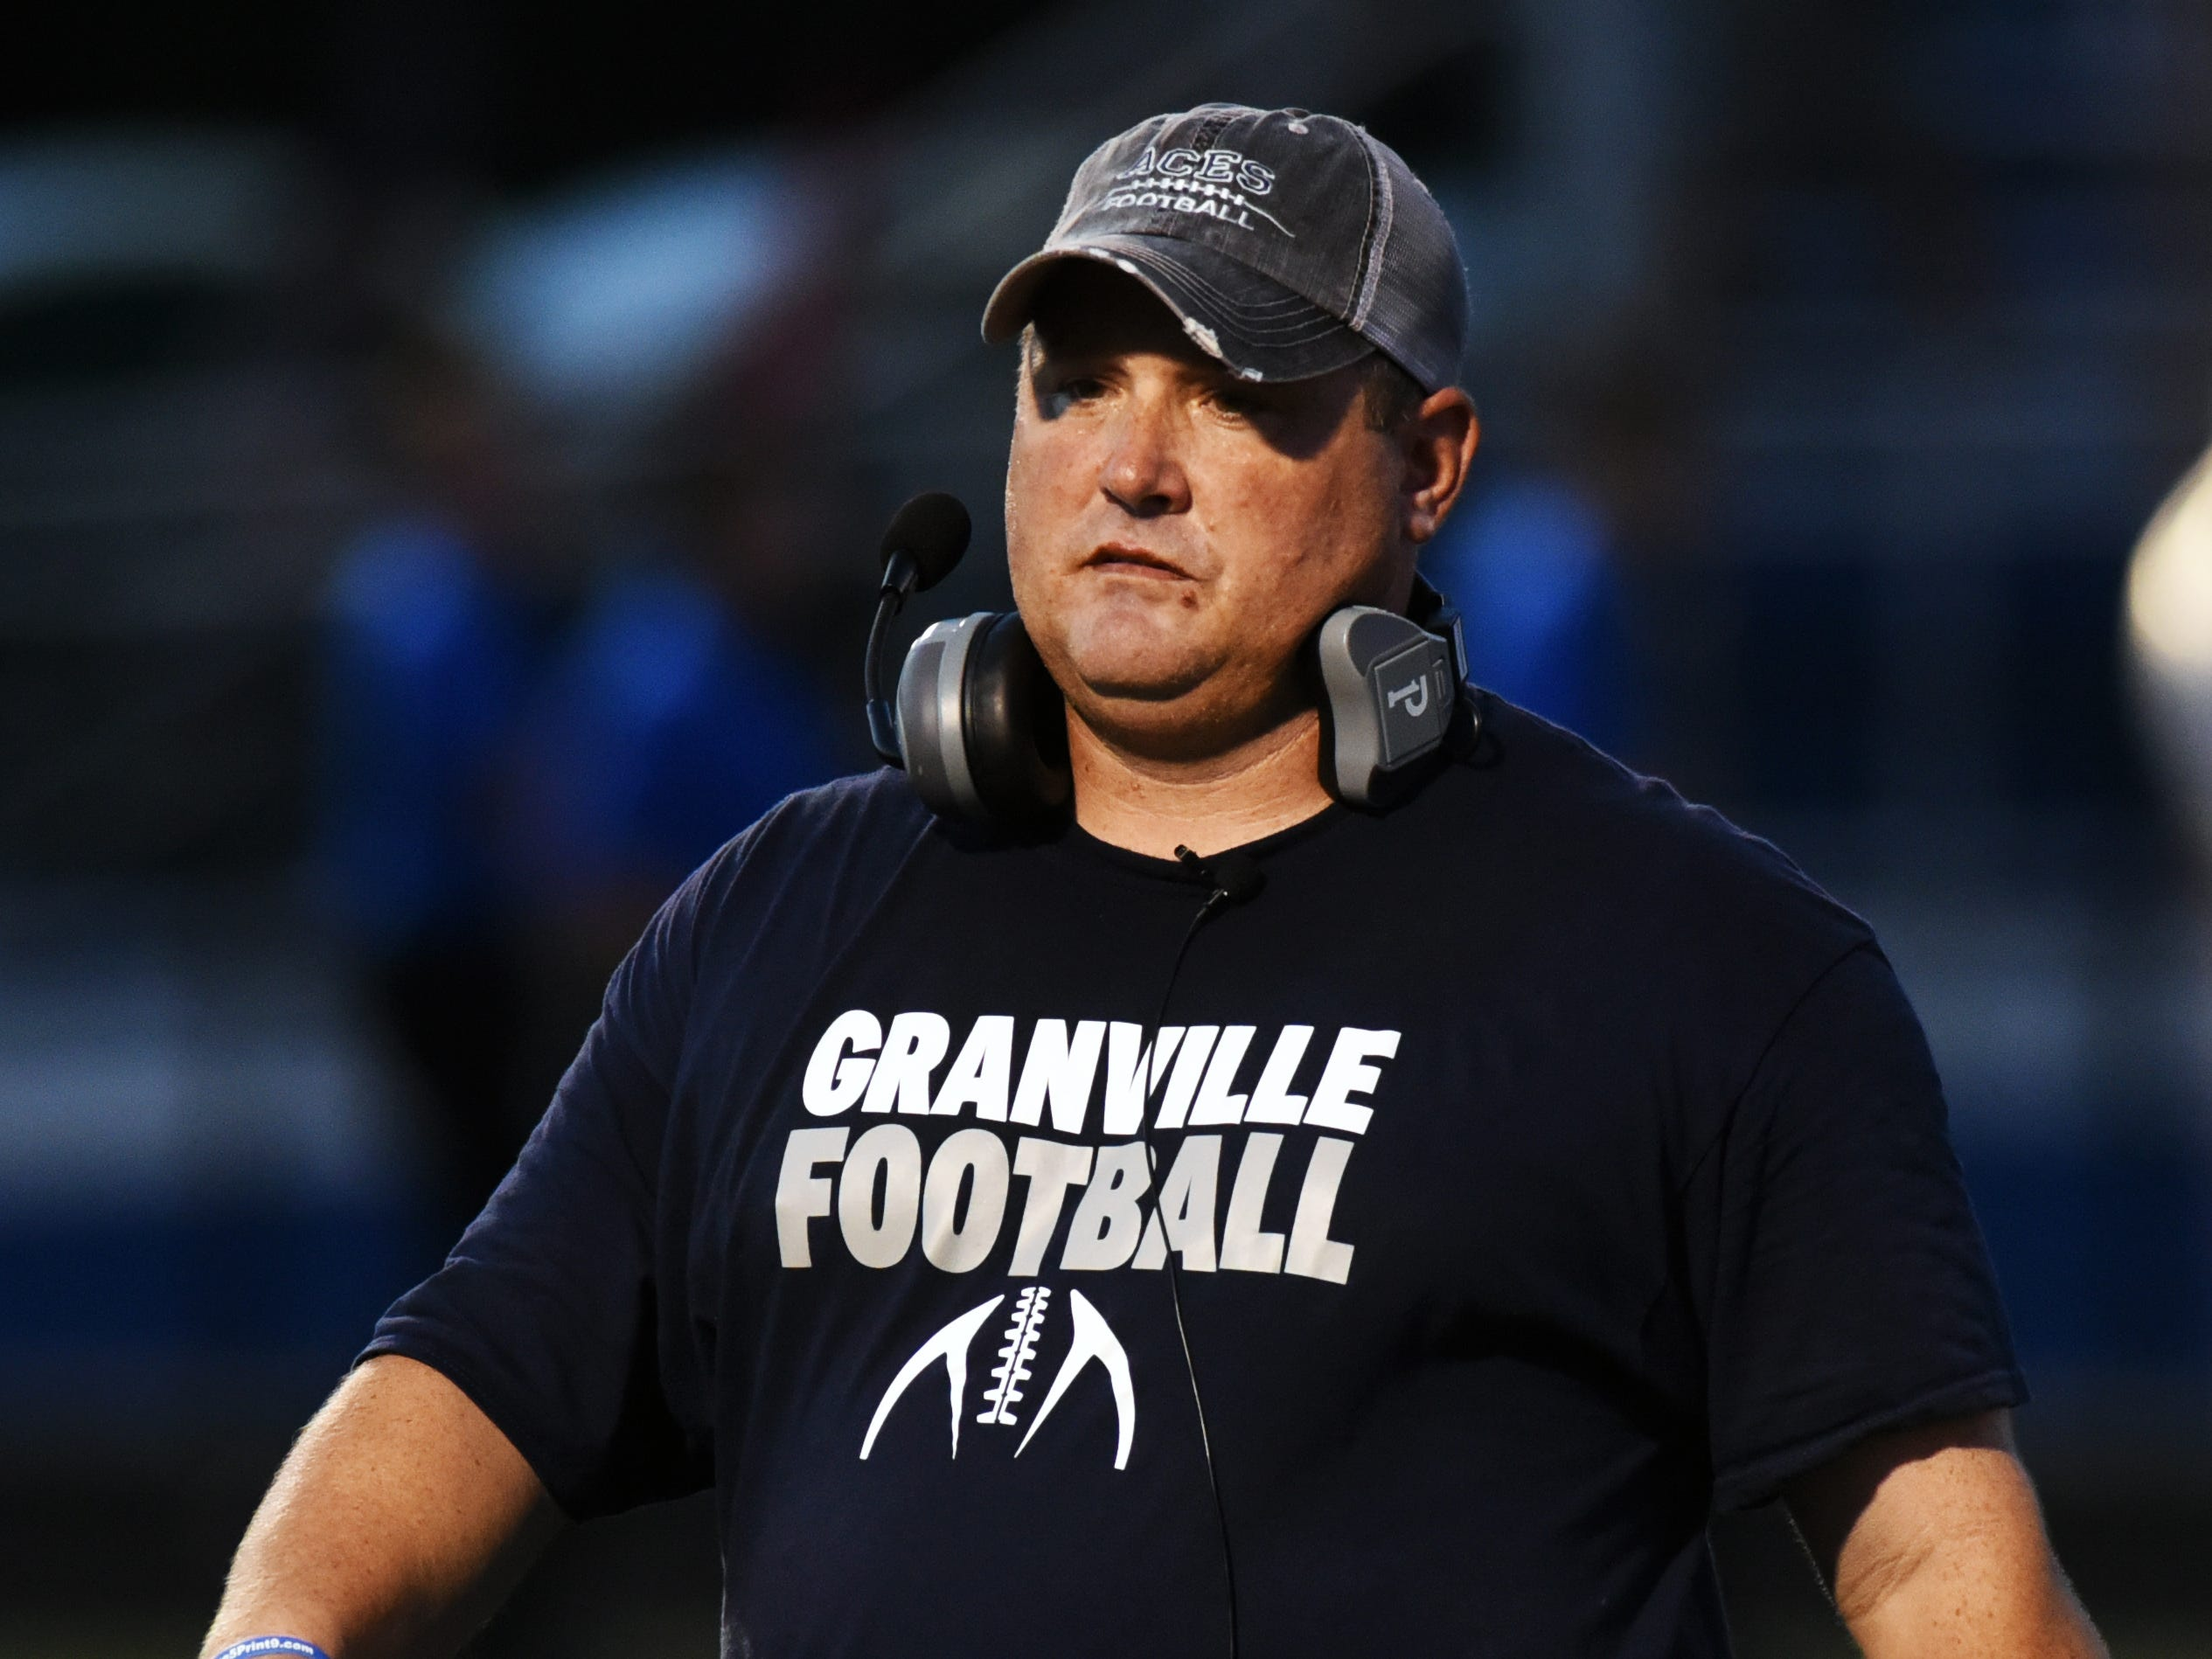 Granville coach Justin Buttermore walks off the field at halftime against Zanesville on Friday night at John D. Sulsberger Memorial Stadium. The Blue Aces won, 17-14.